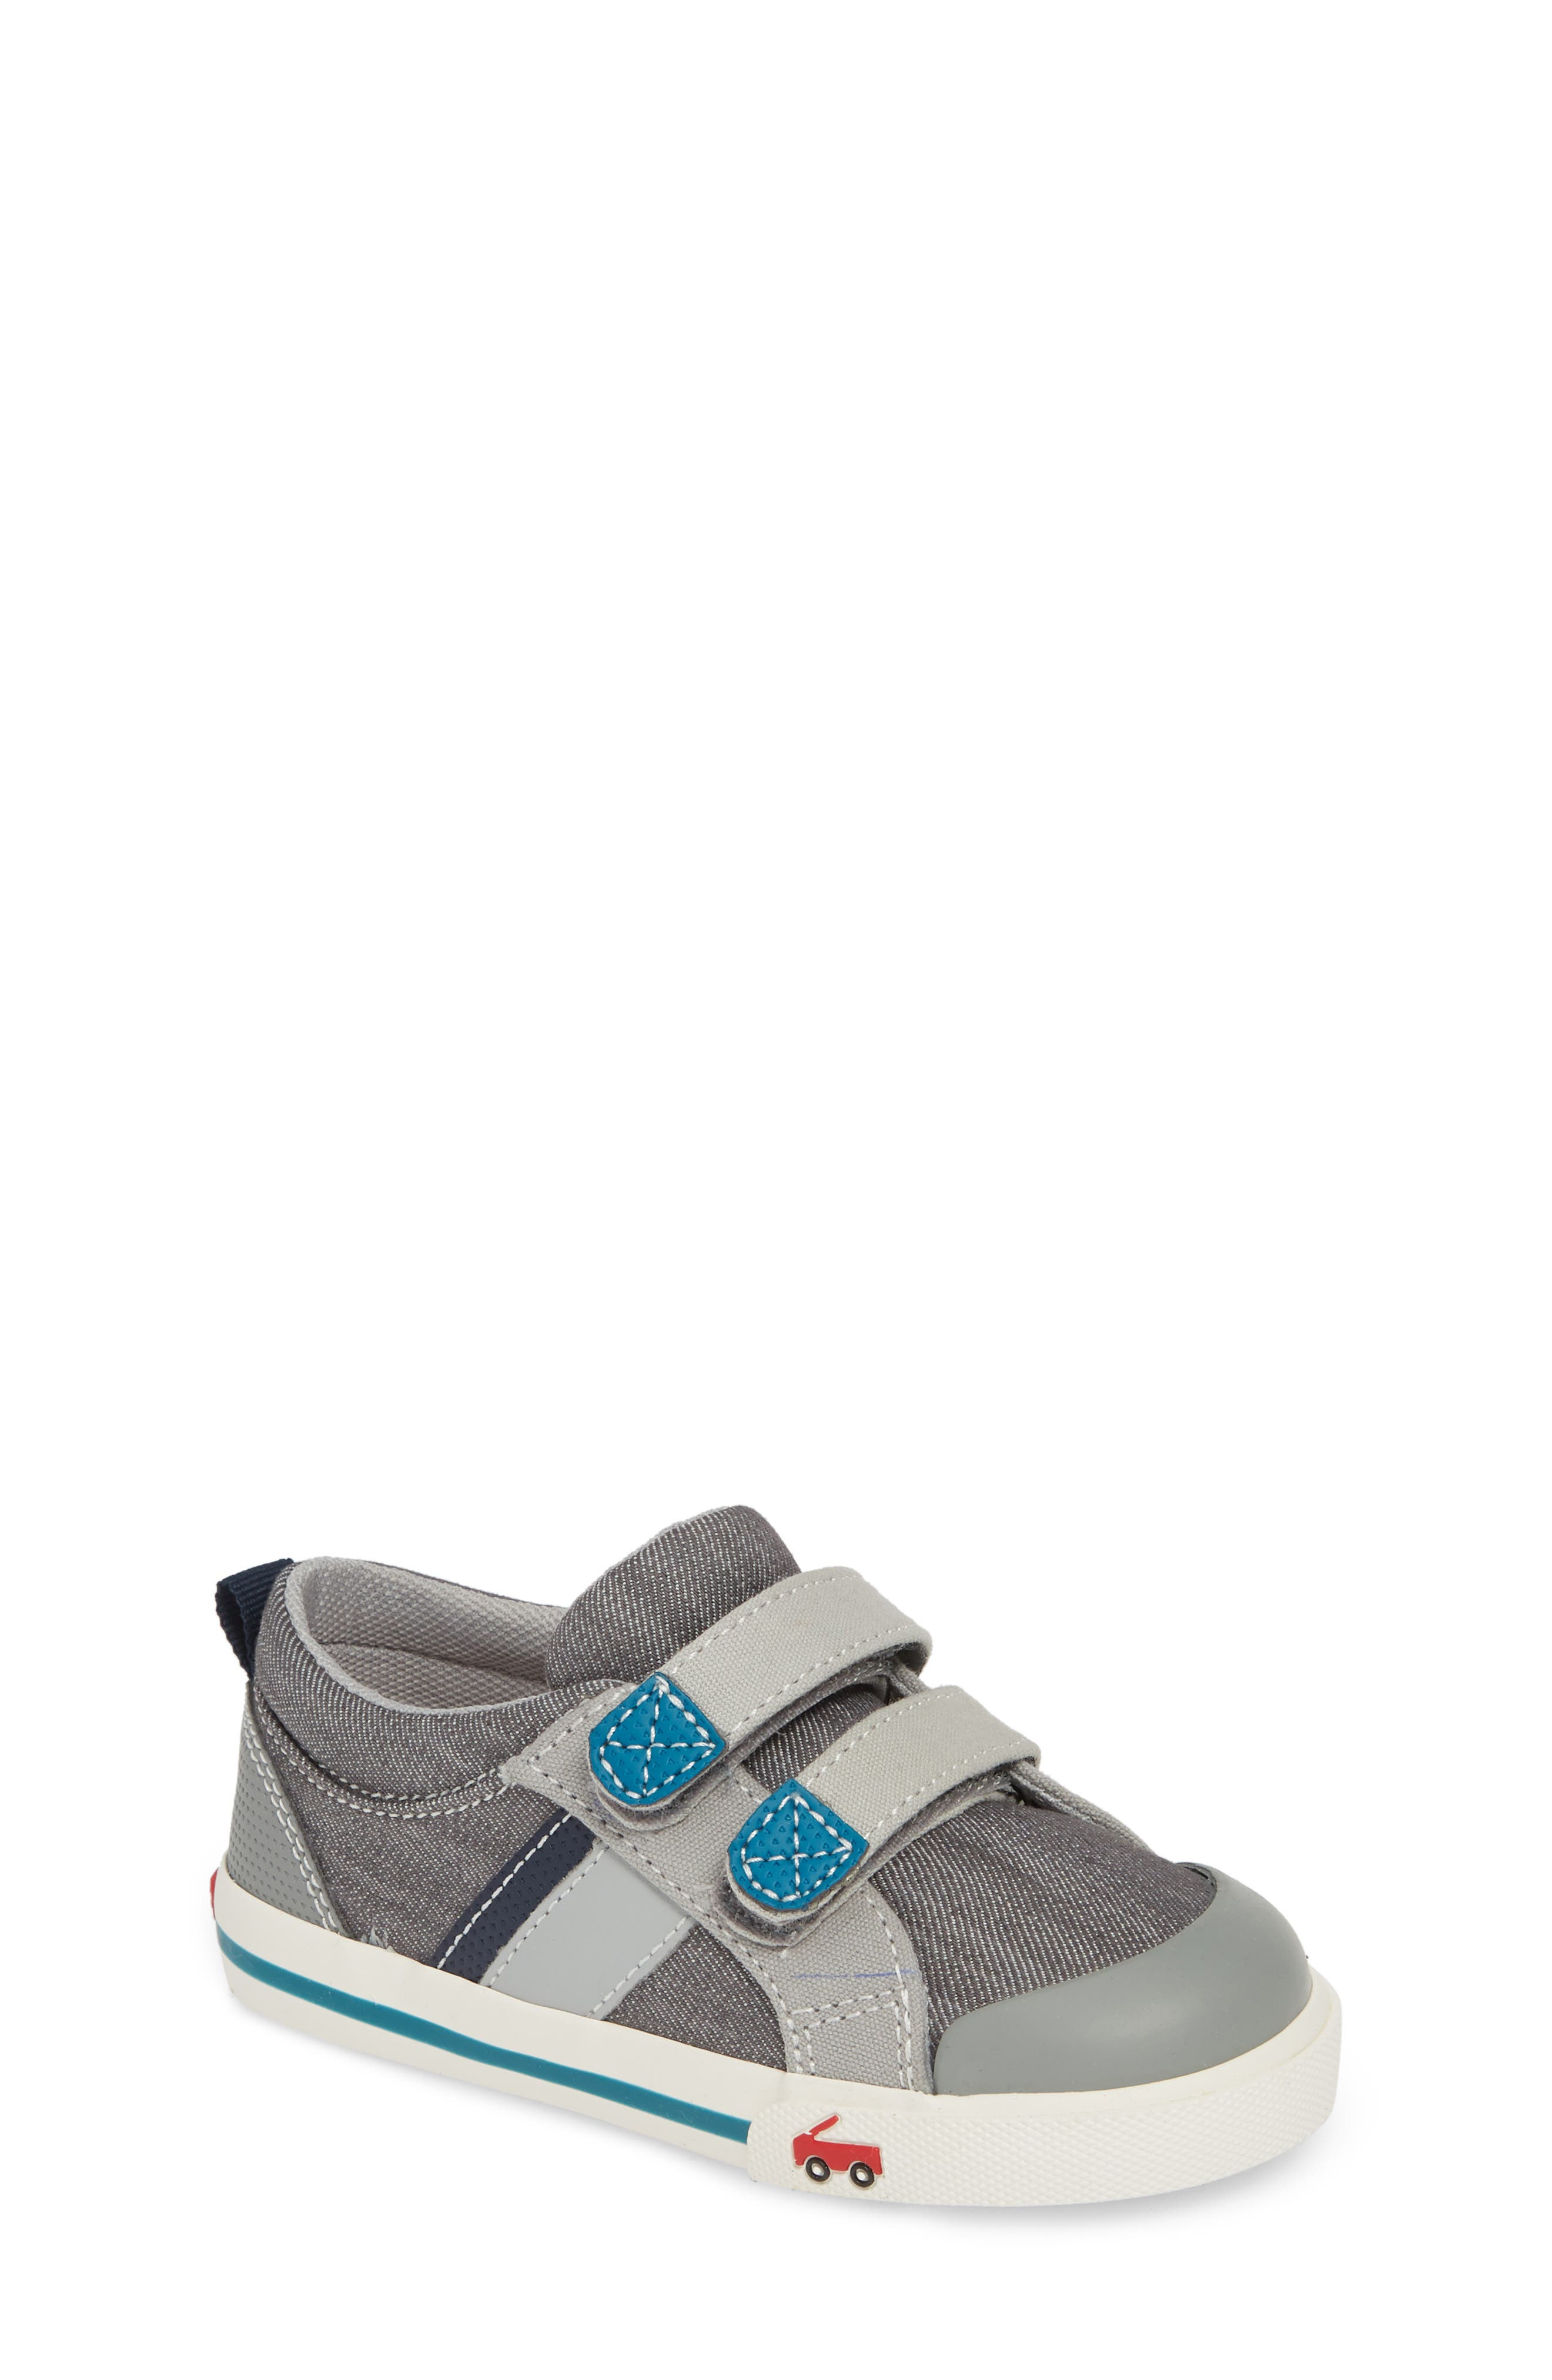 SEE KAI RUN 'Russell' Sneaker, Main, color, GREY/ TEAL